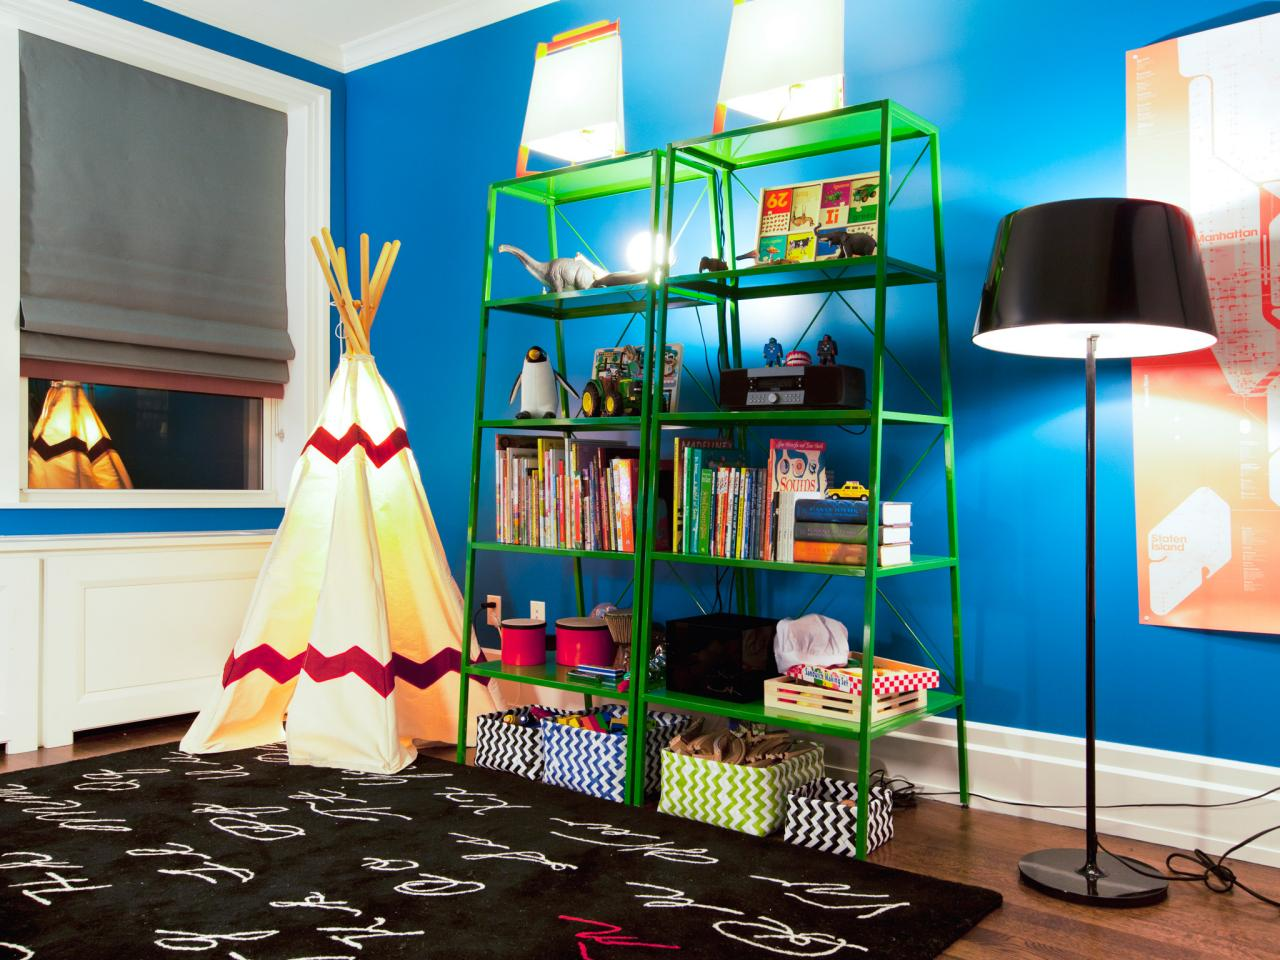 HHBN210_Blue Kids Room Teepee Bookshelf_s4x3